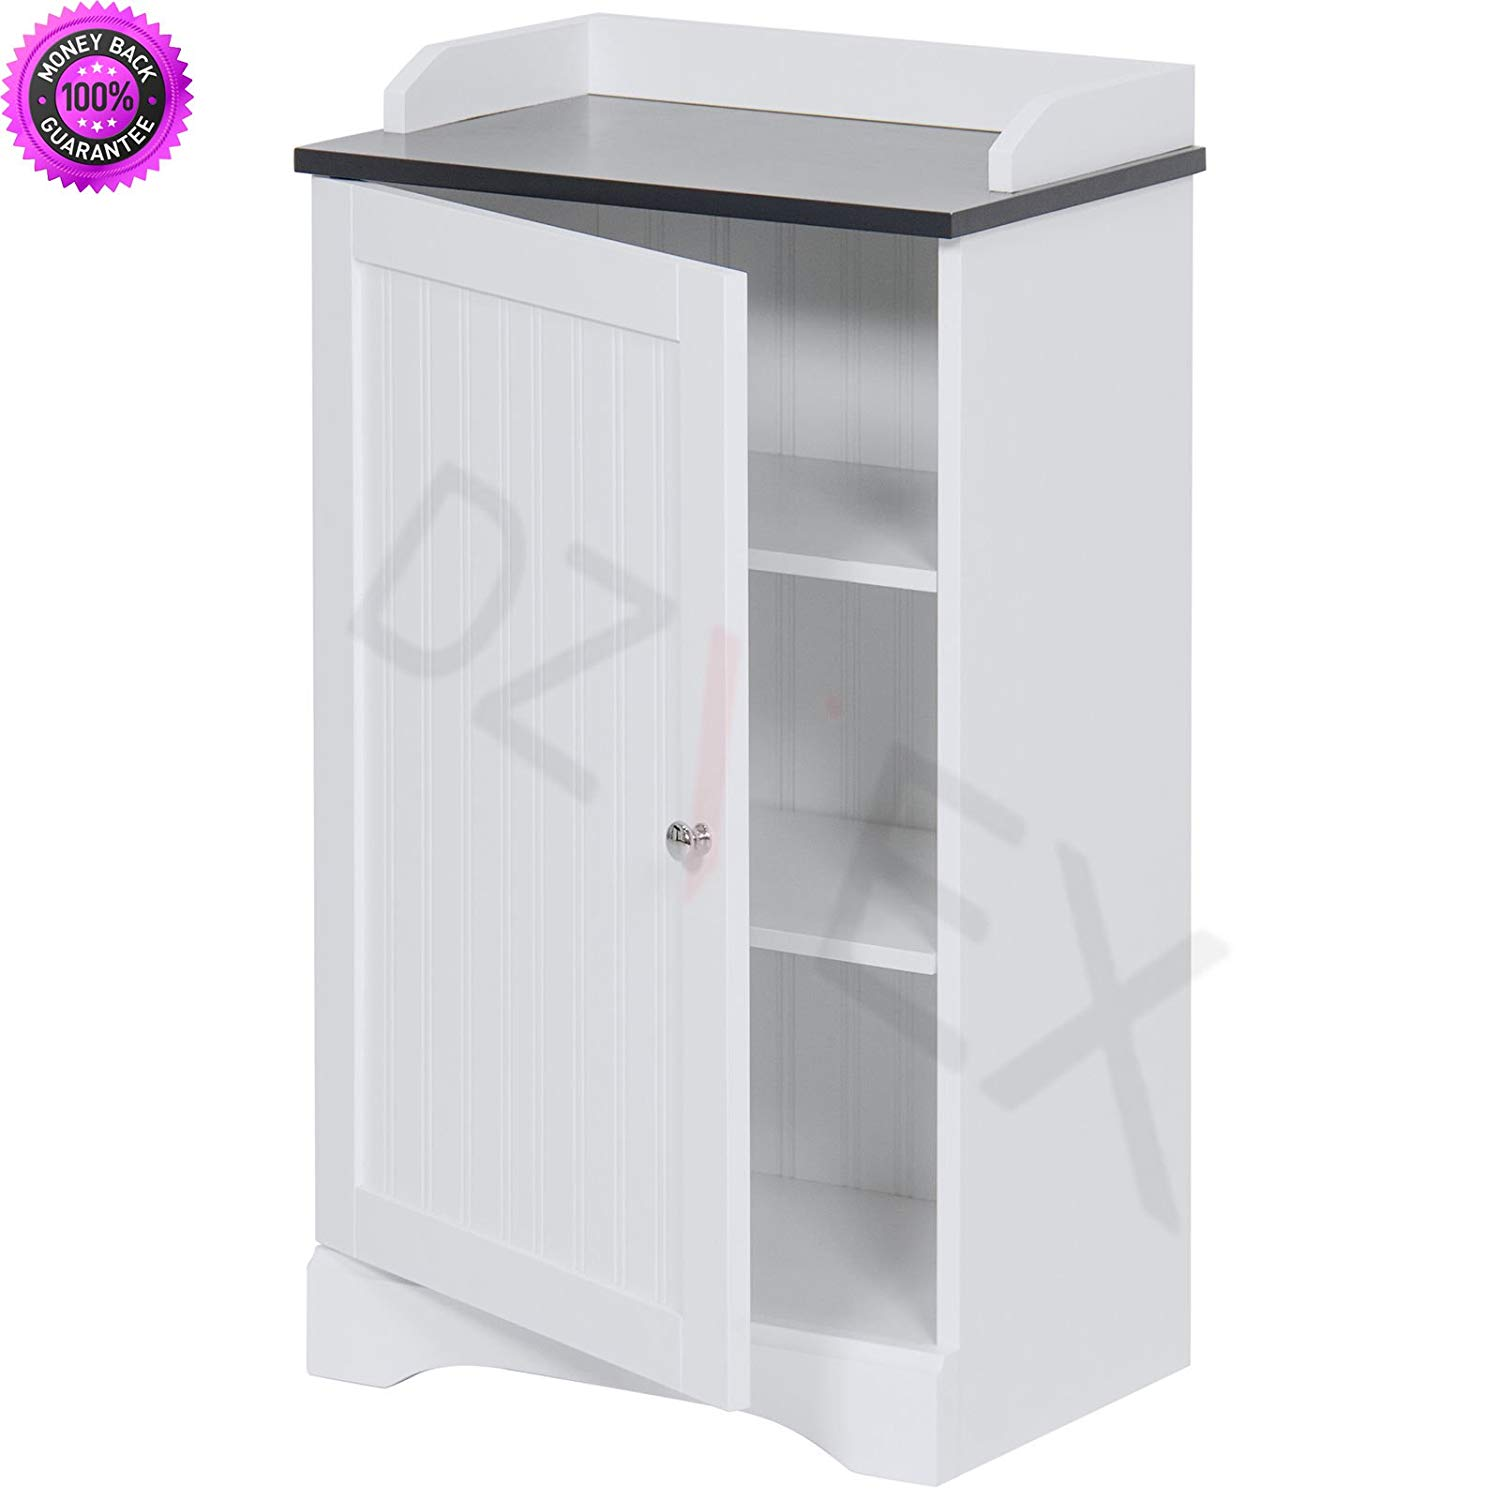 DzVeX Bathroom Floor Storage Cabinet w/Versatile Door (White) And luxury bath accessories bathroom accessories amazon contemporary bathroom accessories designer bathroom accessories bathroom